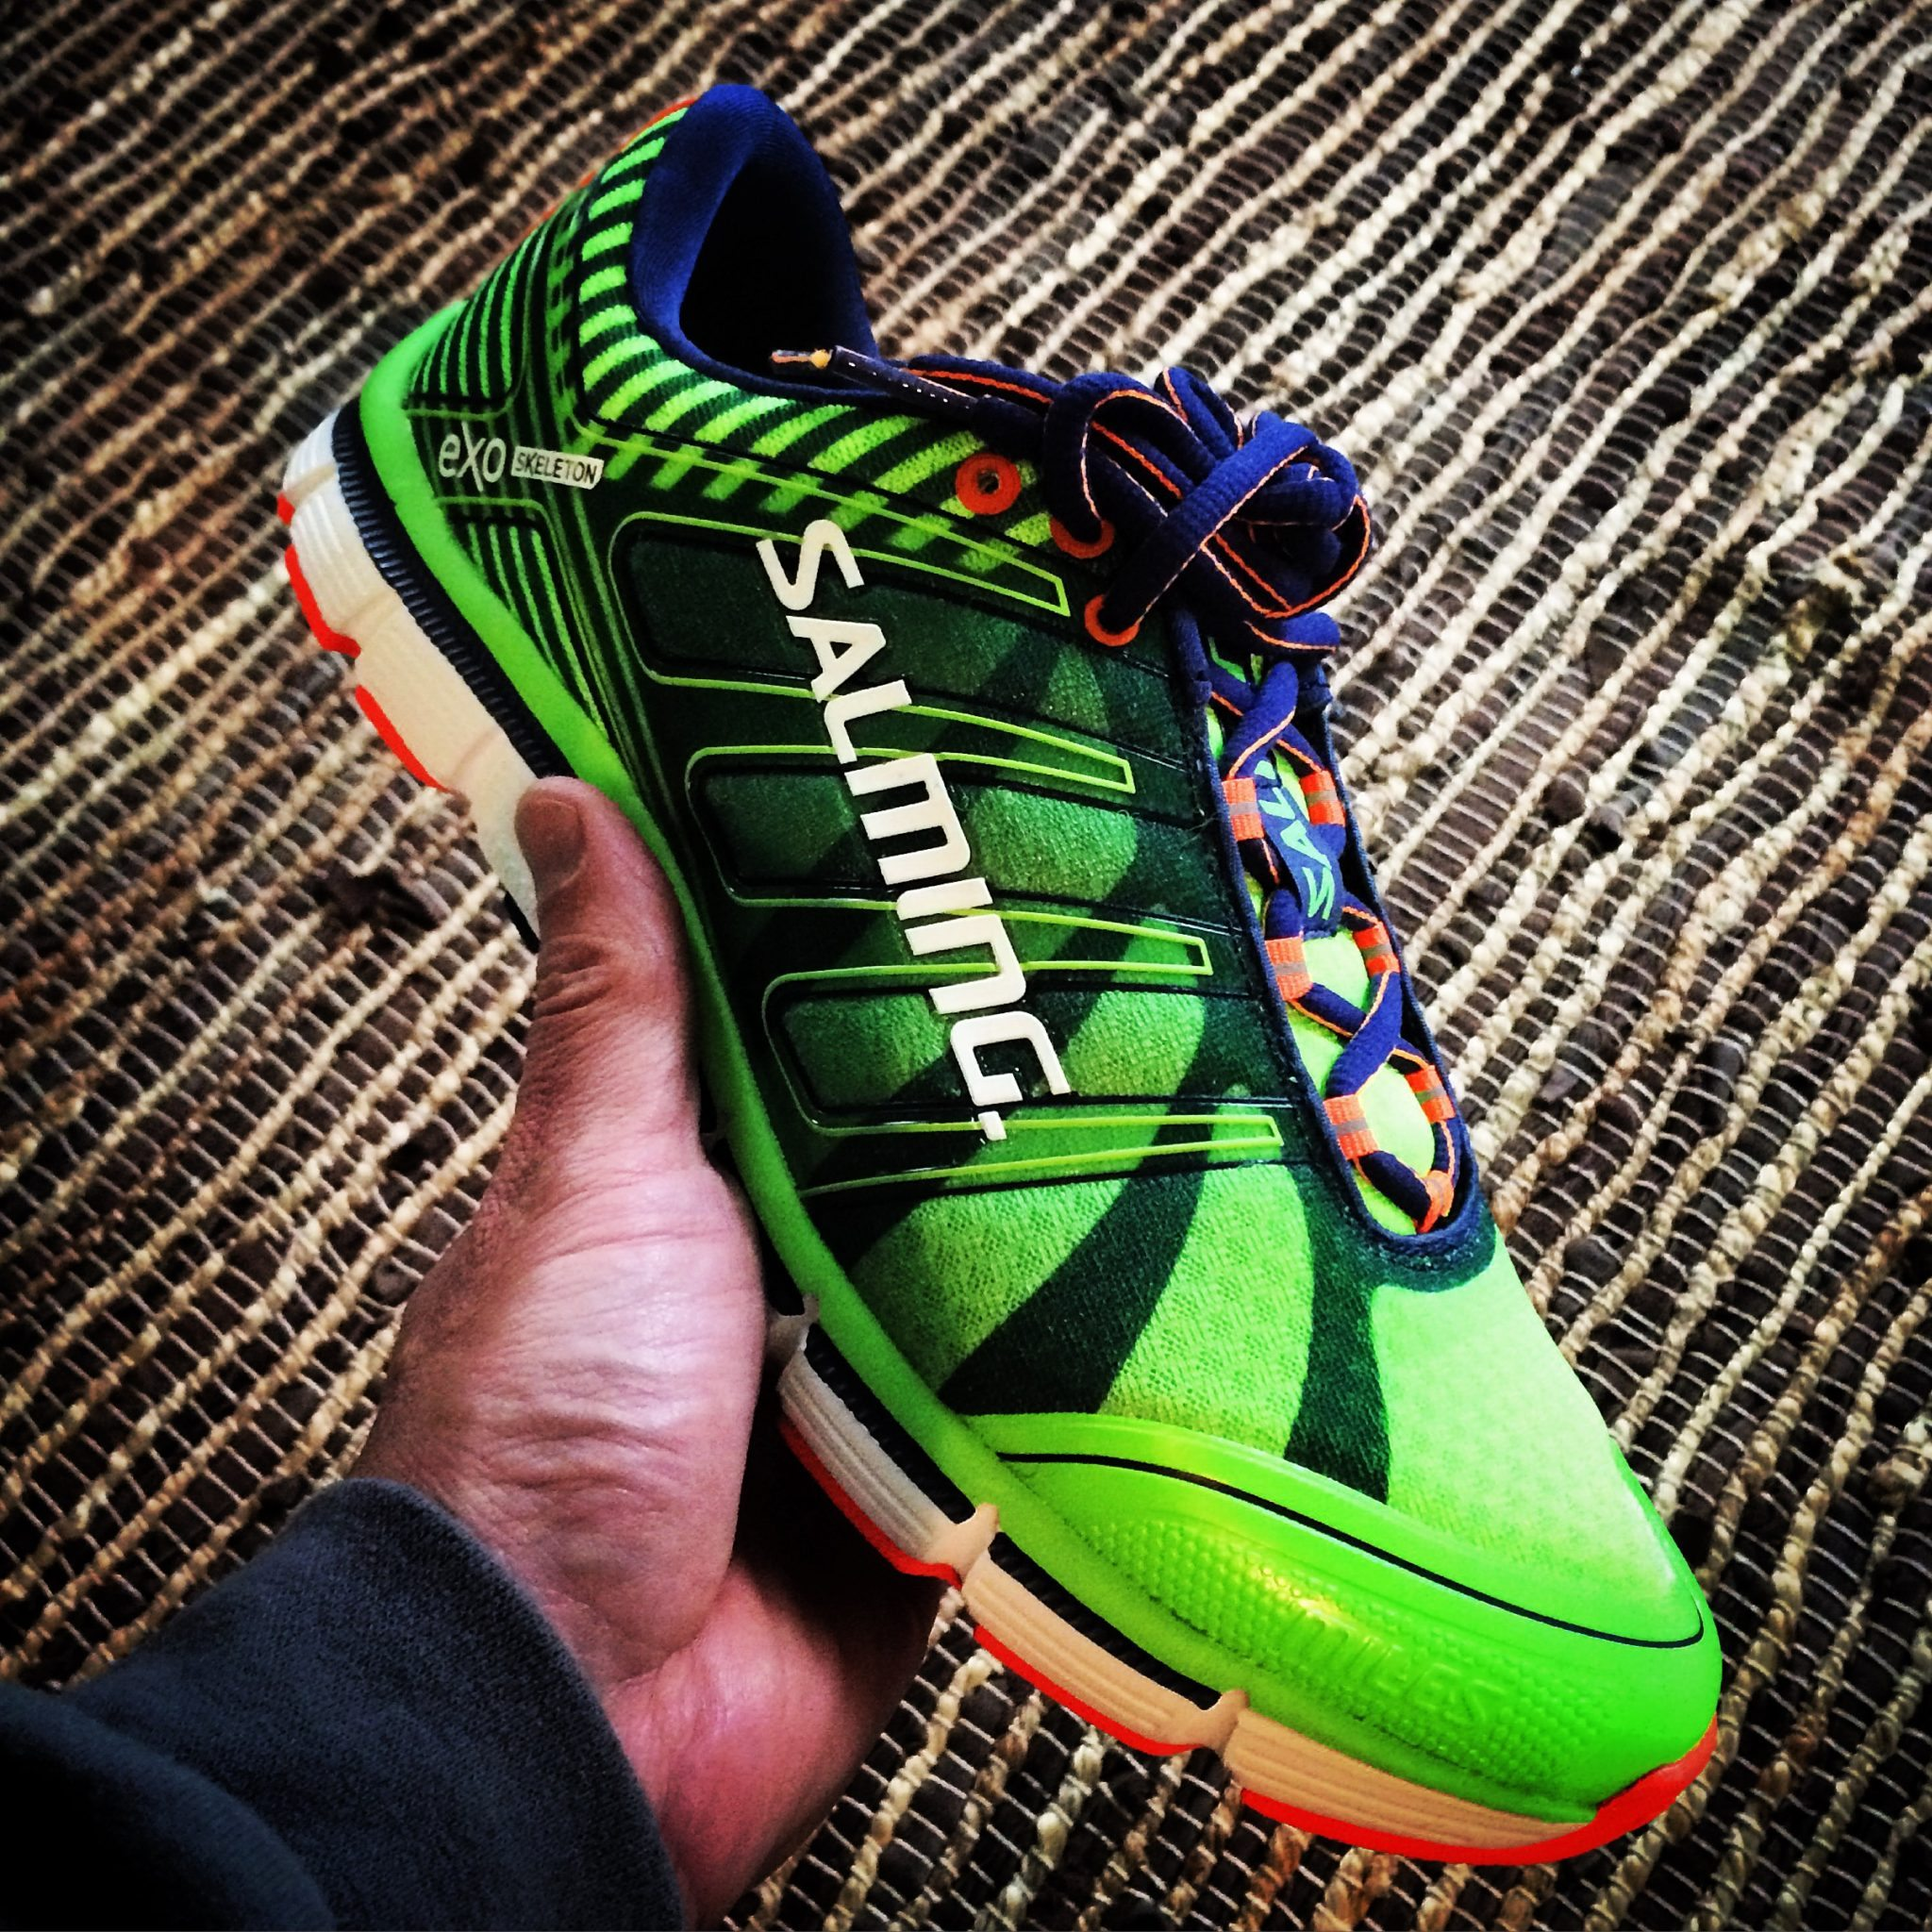 d04ecb150f6ee Salming MILES Running Shoe Review • Spotter Up